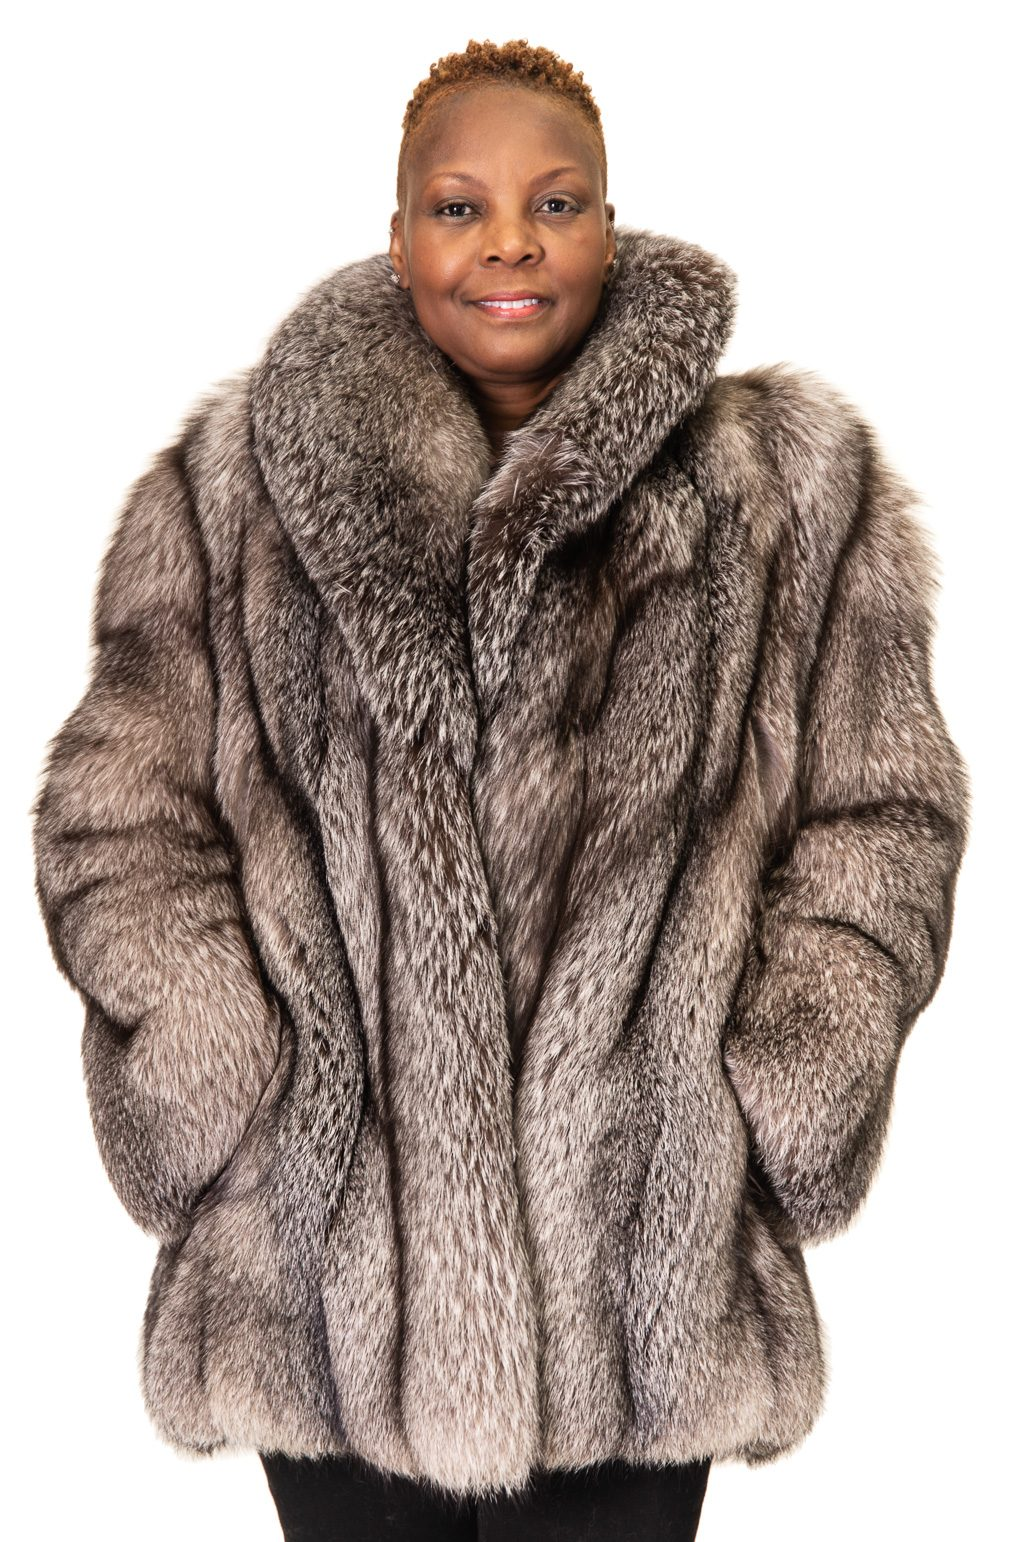 149 2 Silver Fox Ugent Furs